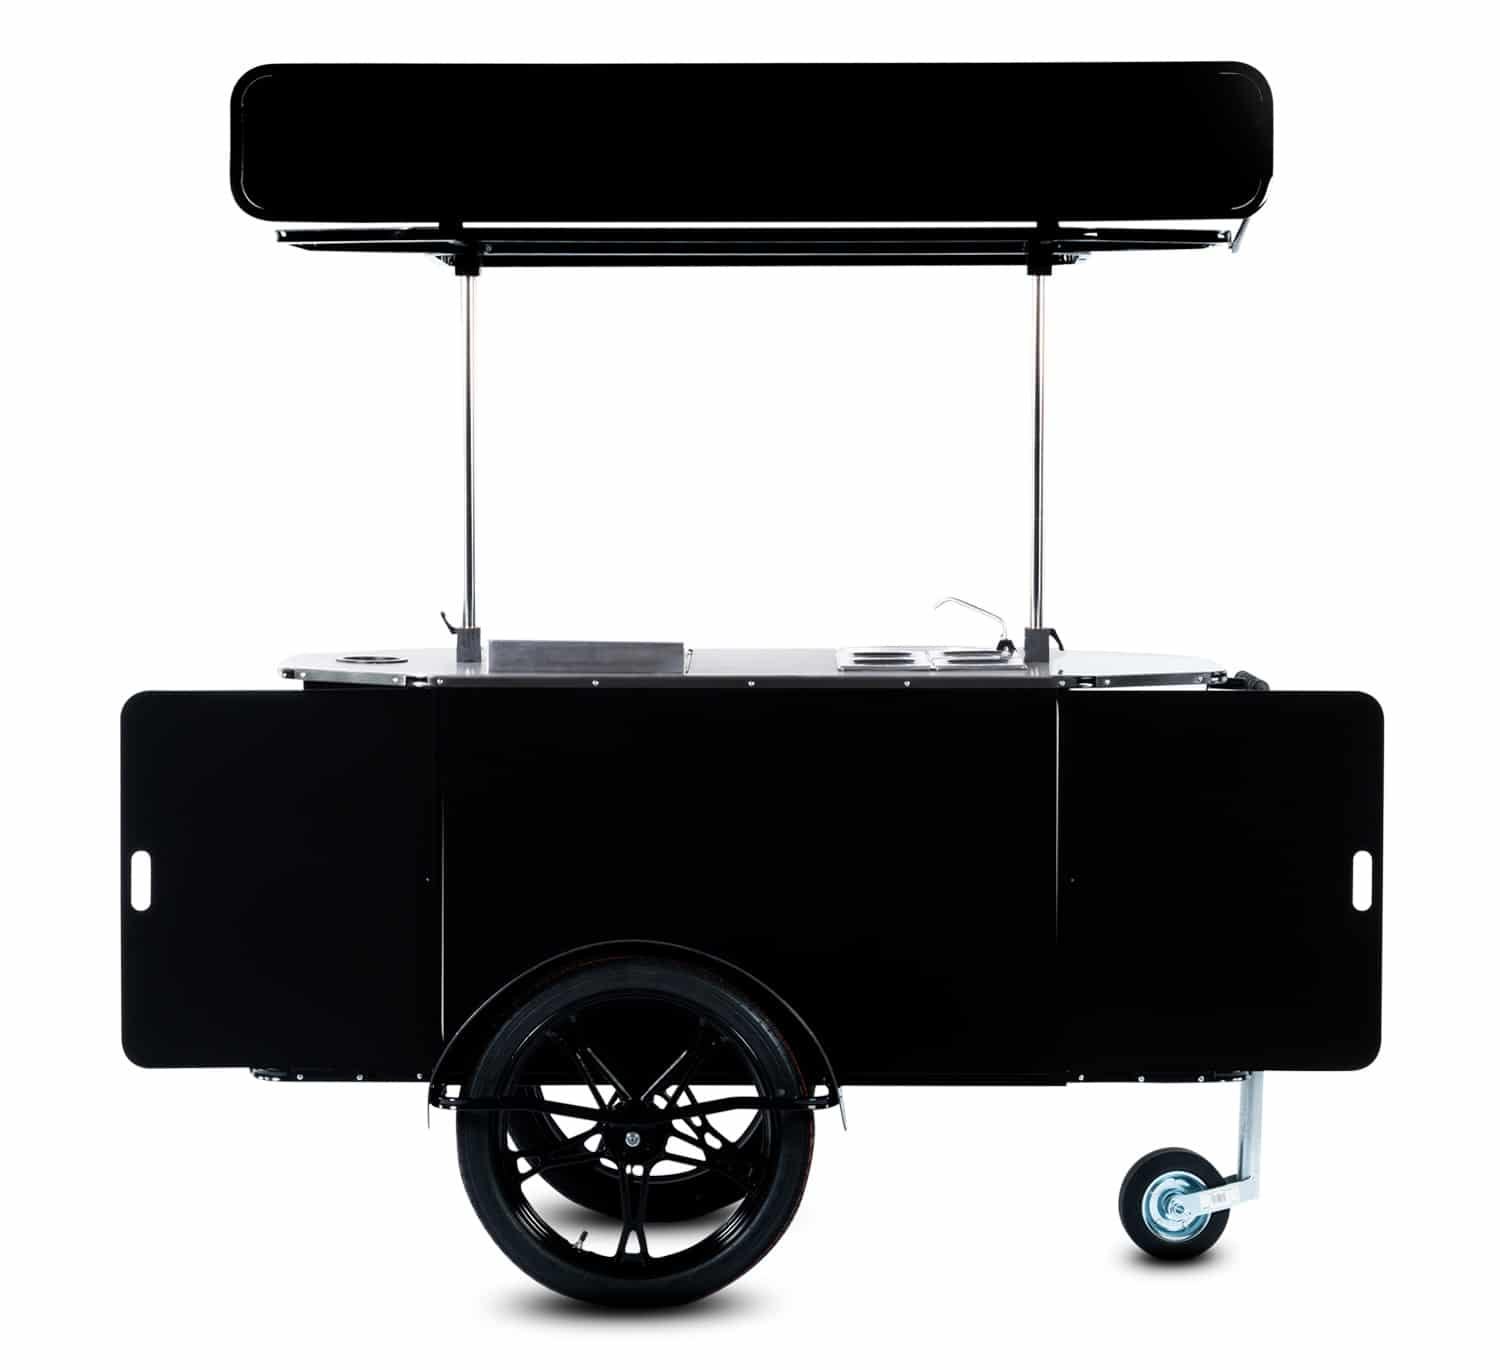 Hot dog cart manufactured by Bizz On Wheels